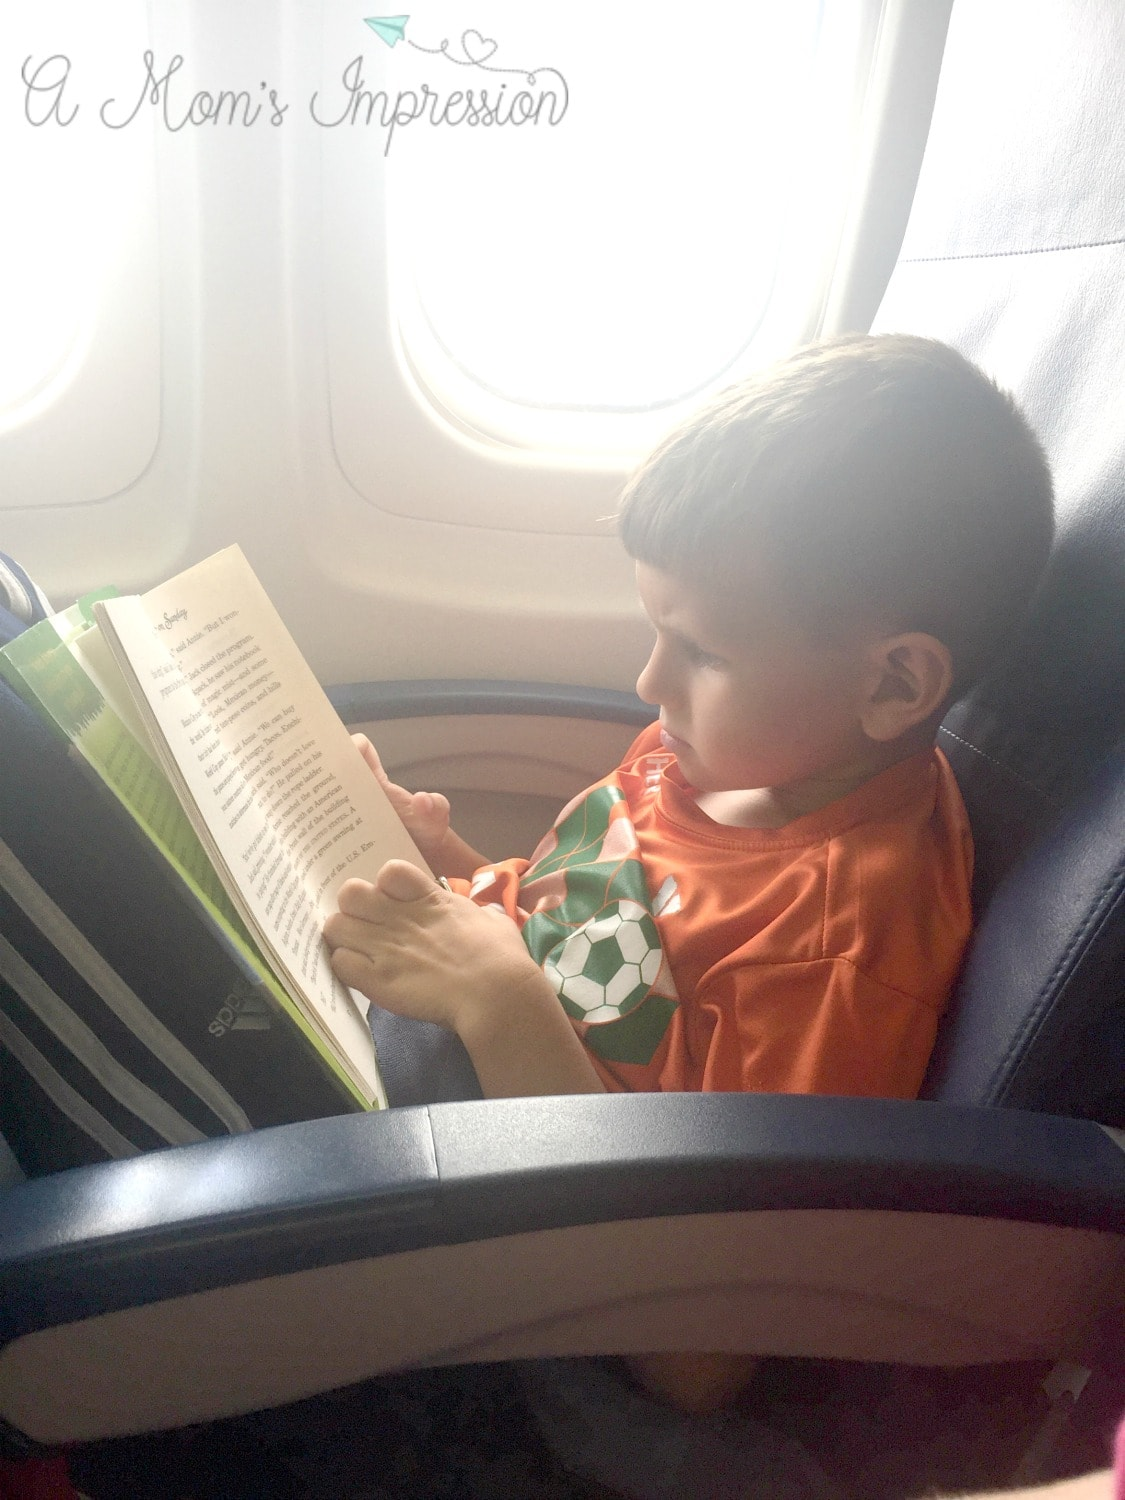 Reading on a plane